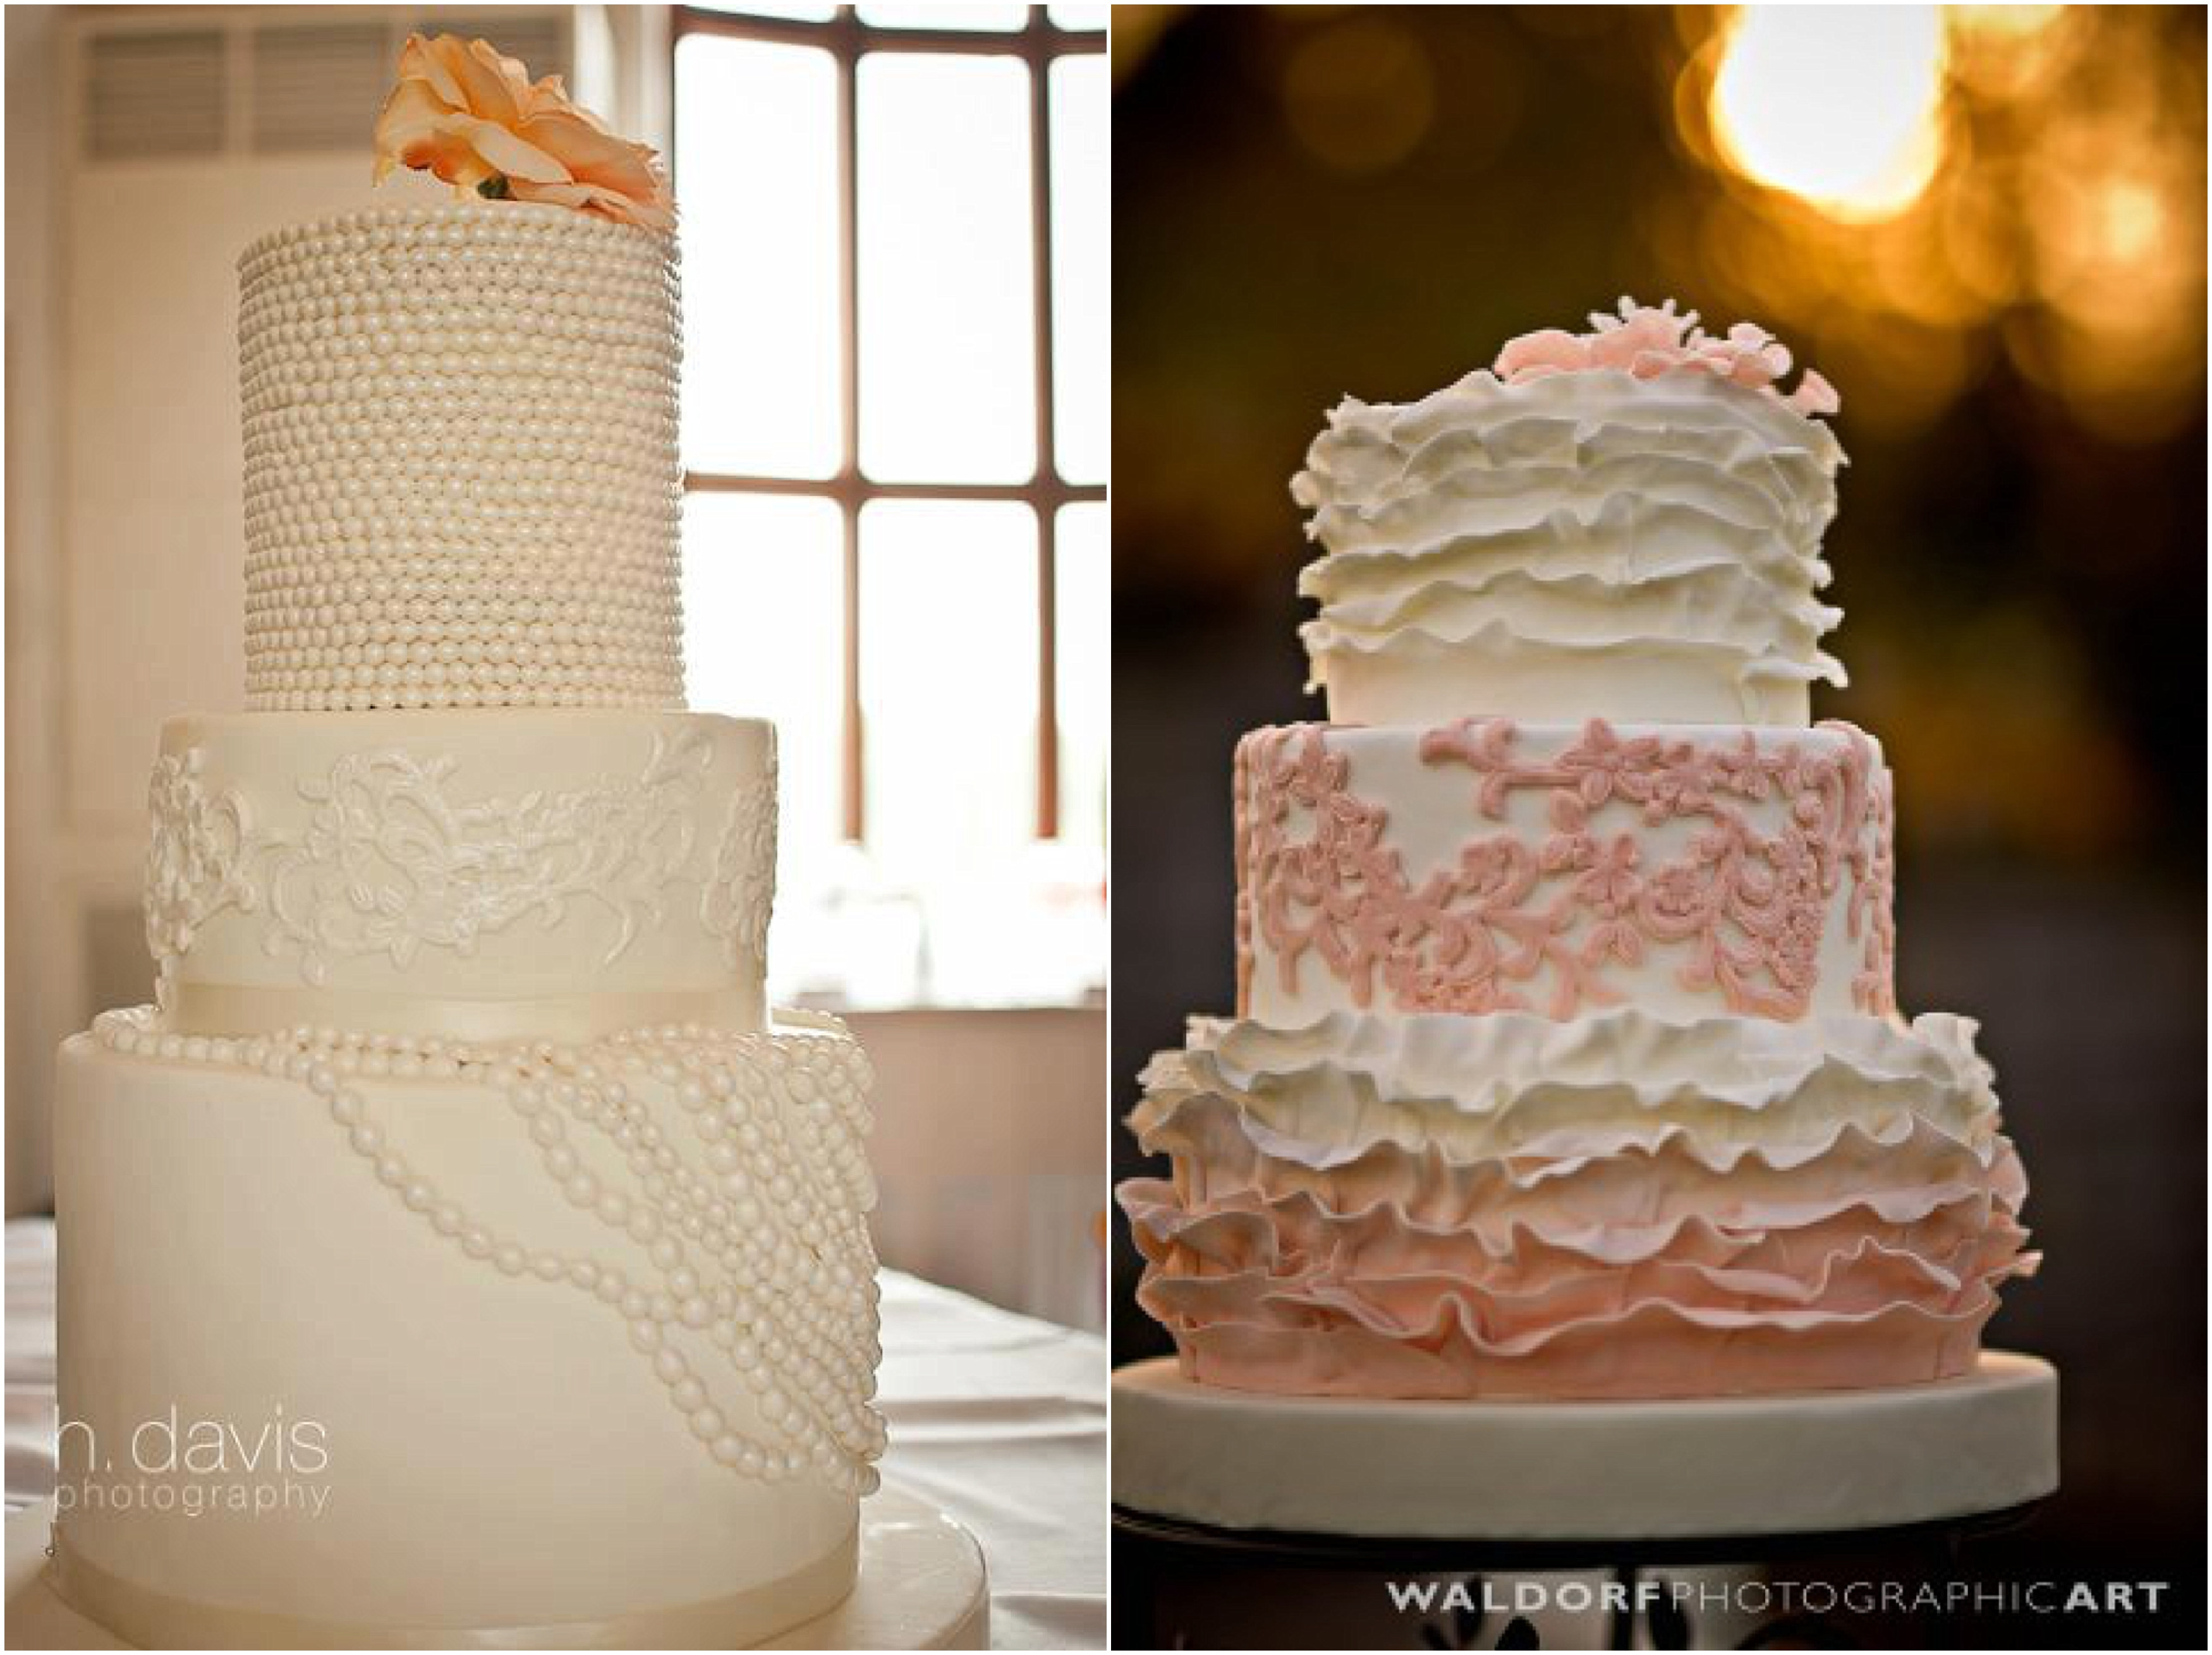 Wedding Cakes Knoxville Tn  Wedding Cakes In Knoxville Tn Wedding Definition Ideas